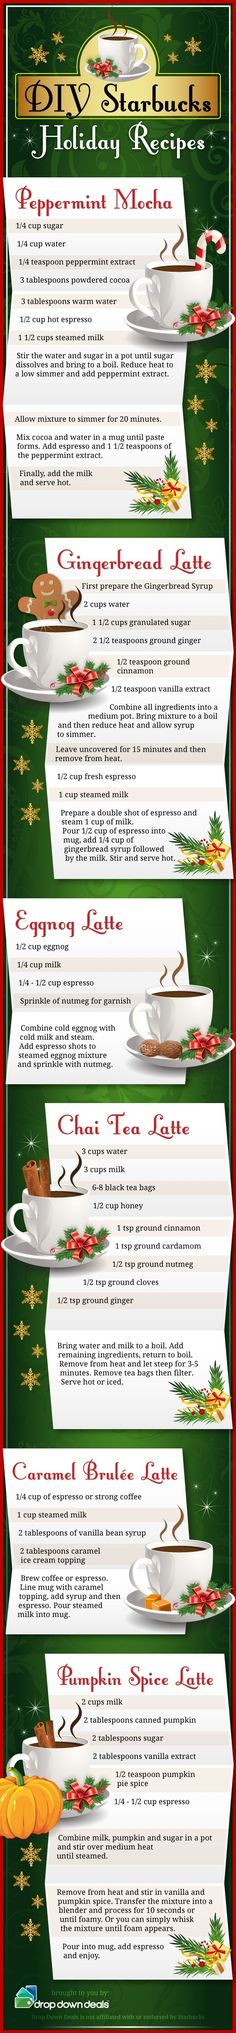 DIY Starbucks holiday drink recipes - very important to know! (for me )